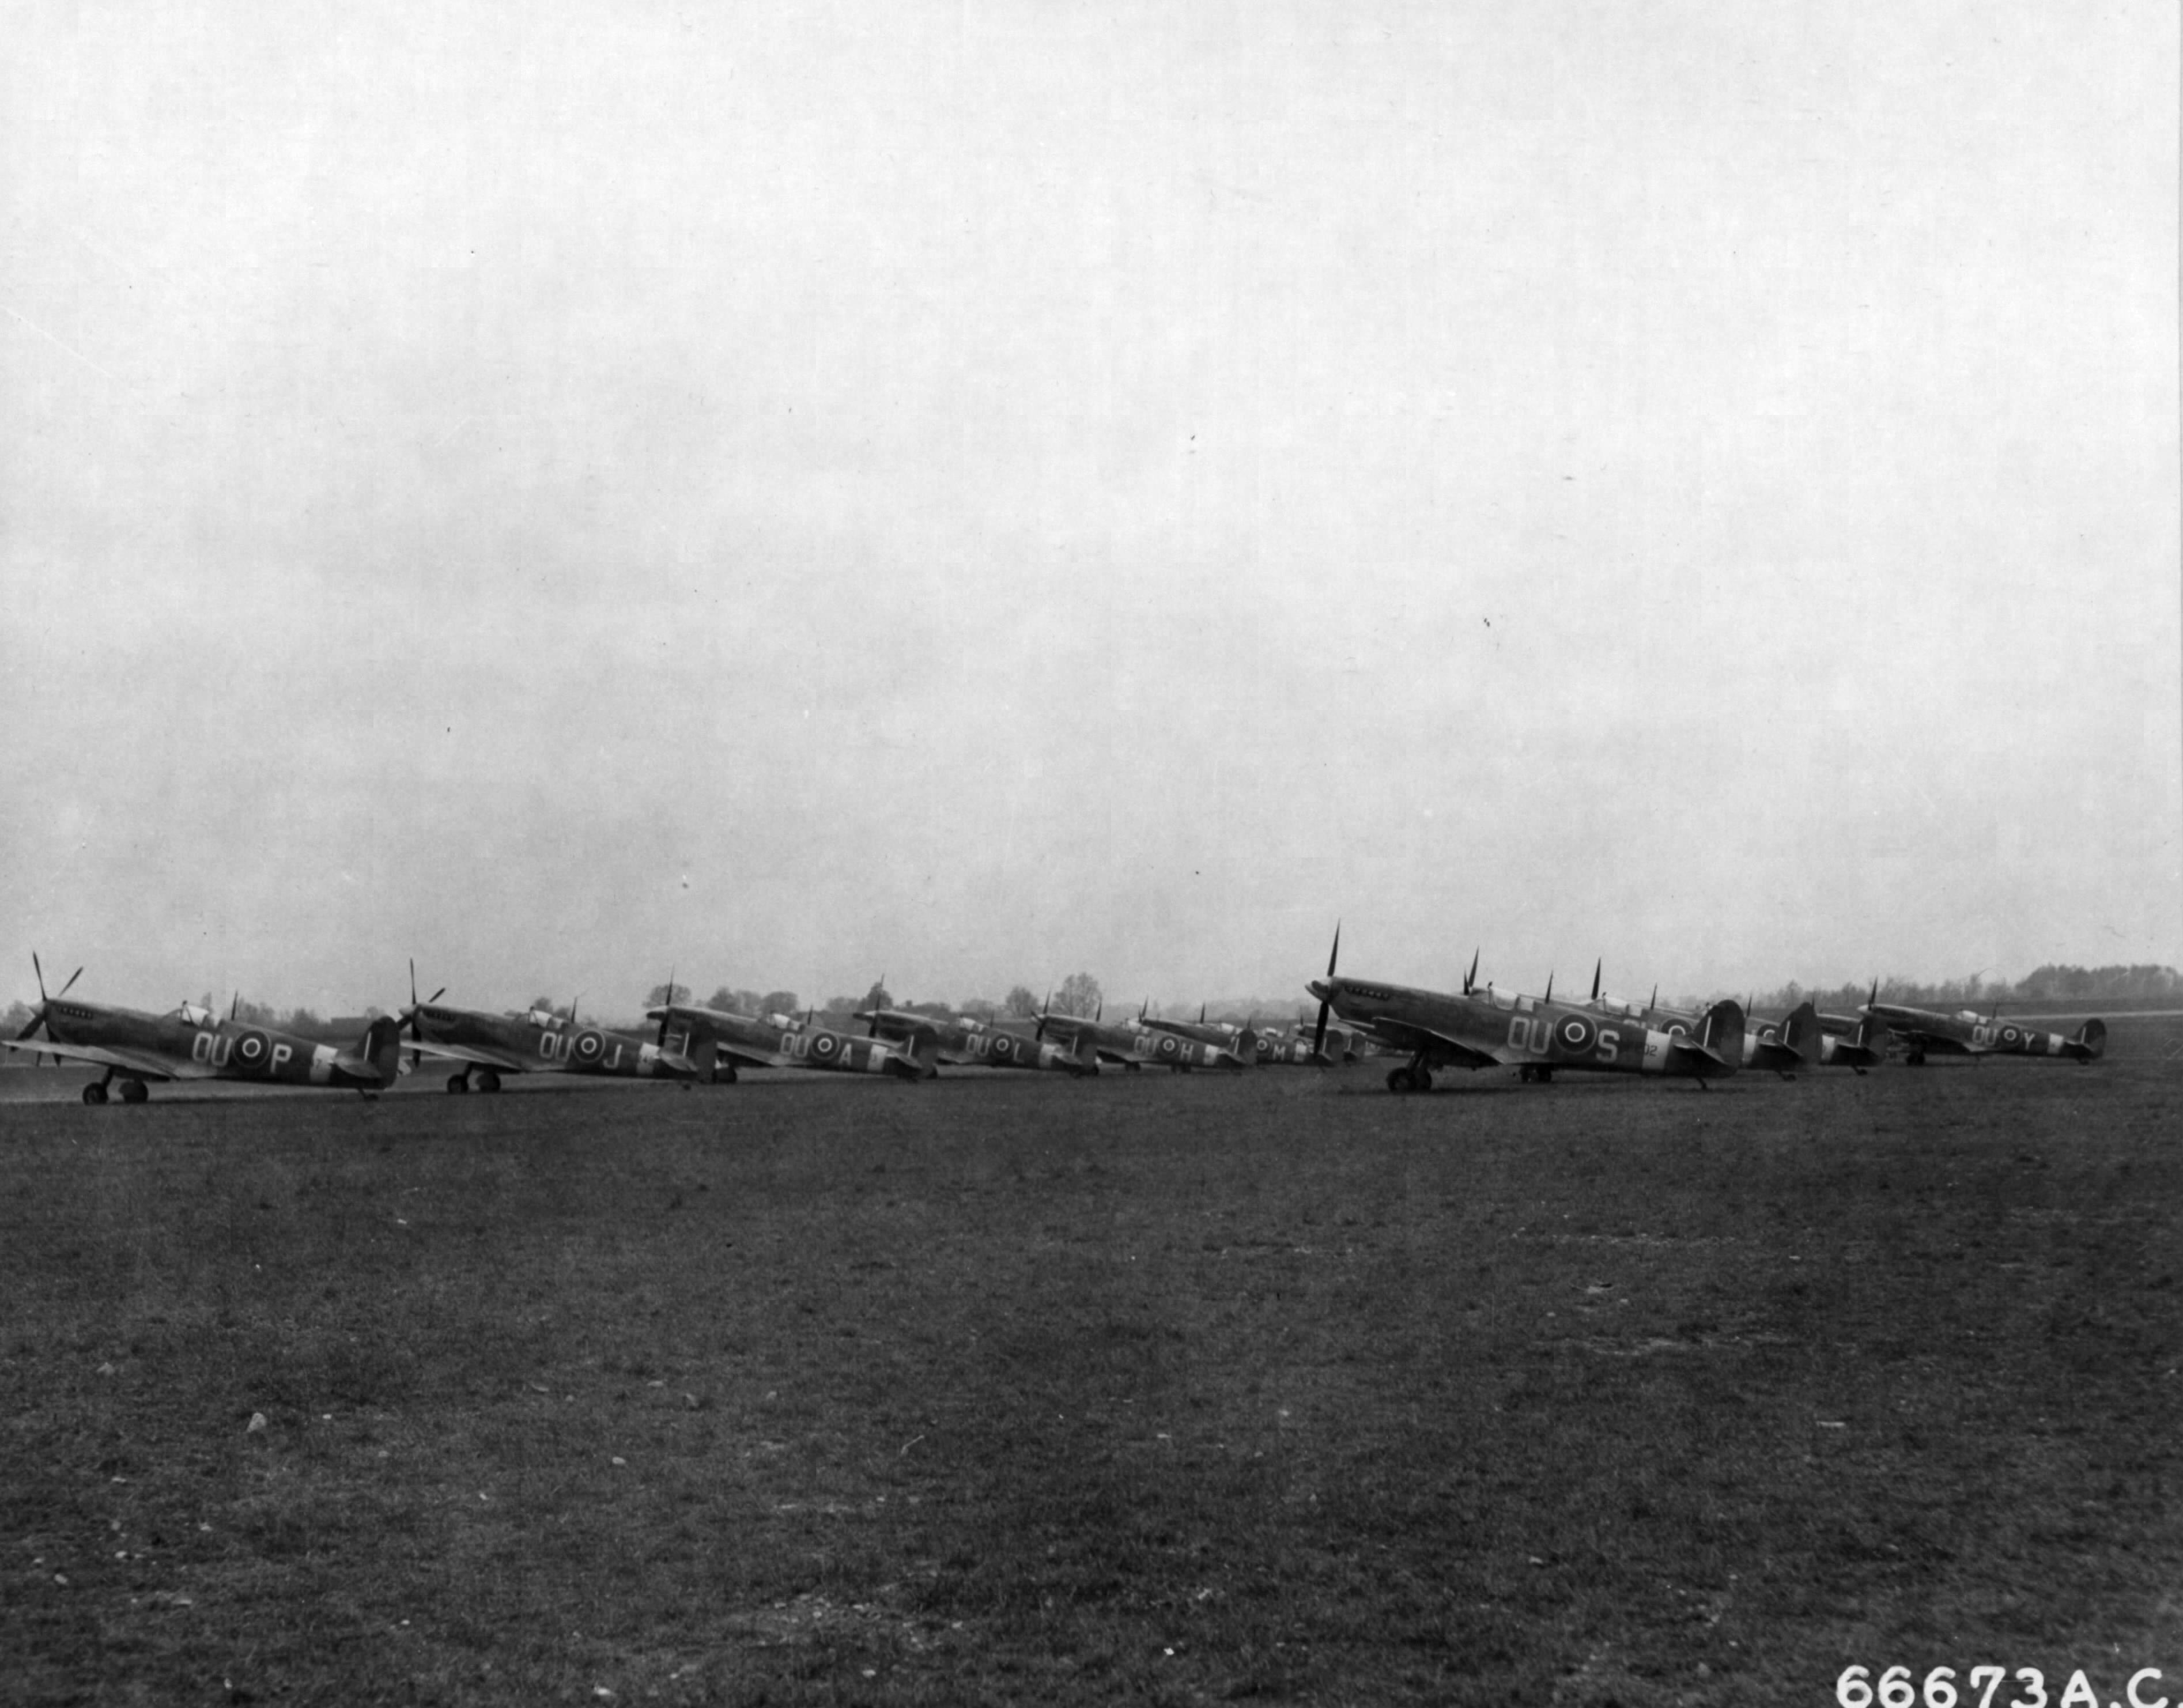 Spitfires LFIX RNZAF 485Sqn OUS OUY OUP OUJ OUA OUL OUH and OUM at RAF Station 112 England 30th Mar 1944 01